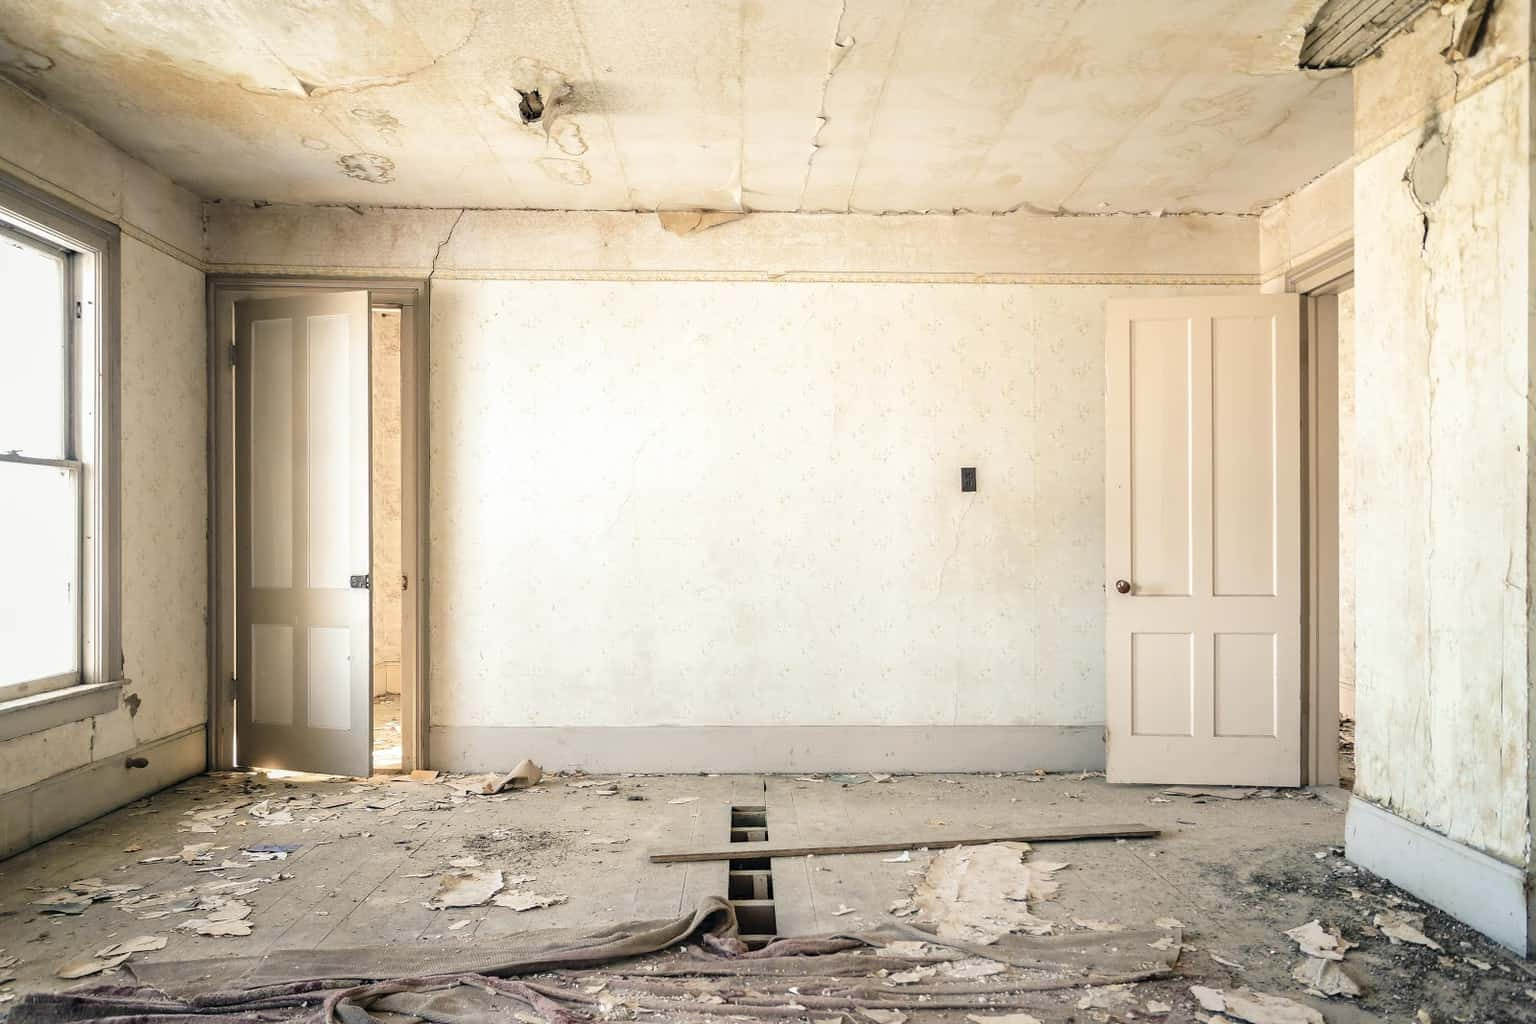 Living in or Renovating an Older Home? Asbestos Dangers and Risks